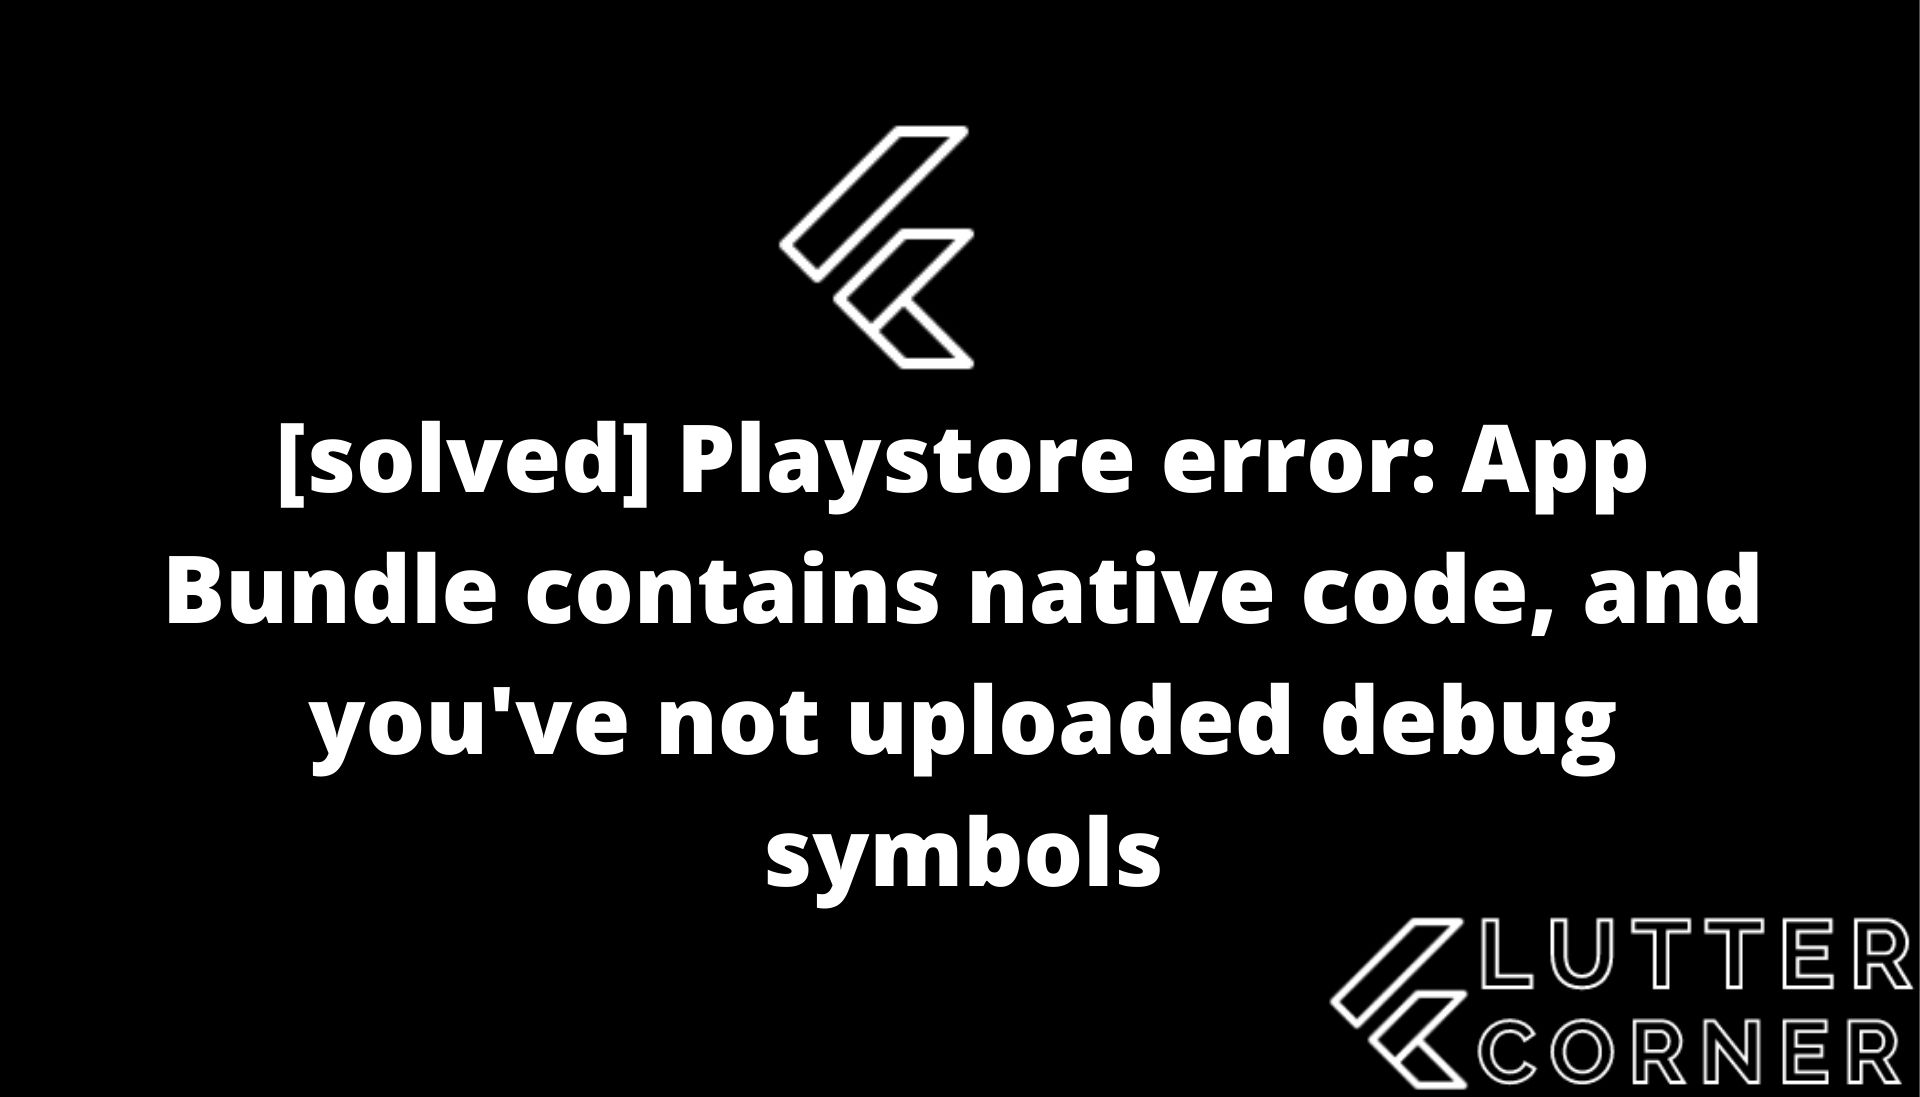 Playstore Error: App Bundle contains native code and you've not uploaded Dedub symbol in flutter, App Bundle contains native code and you've not uploaded dedub symbol, Playstore Error: App Bundle contains native code and you've not uploaded dedub symbol flutter